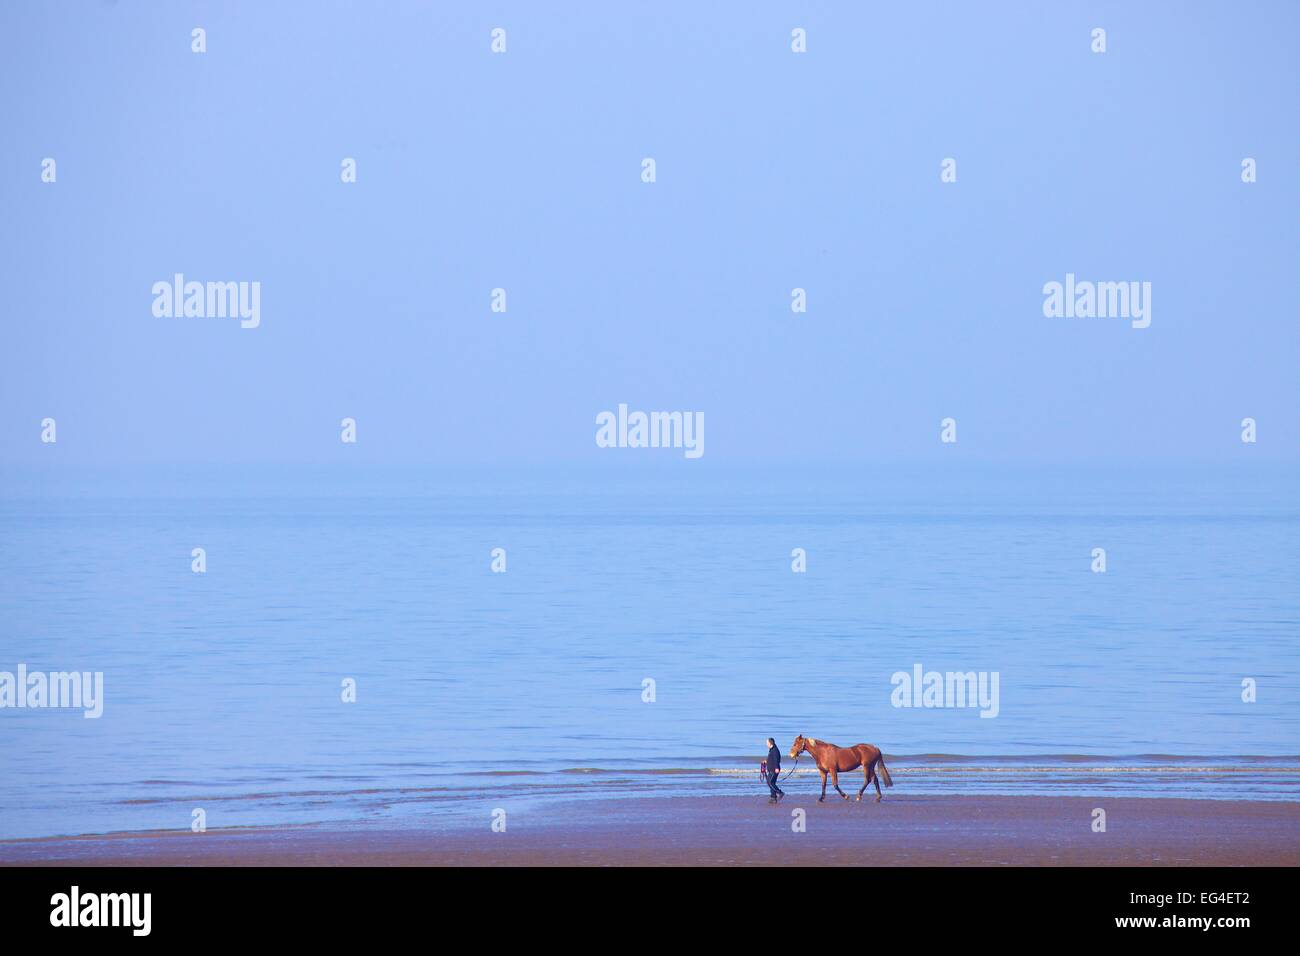 Man and horse walking on a beach by the sea. Allonby Bay Cumbria England UK - Stock Image